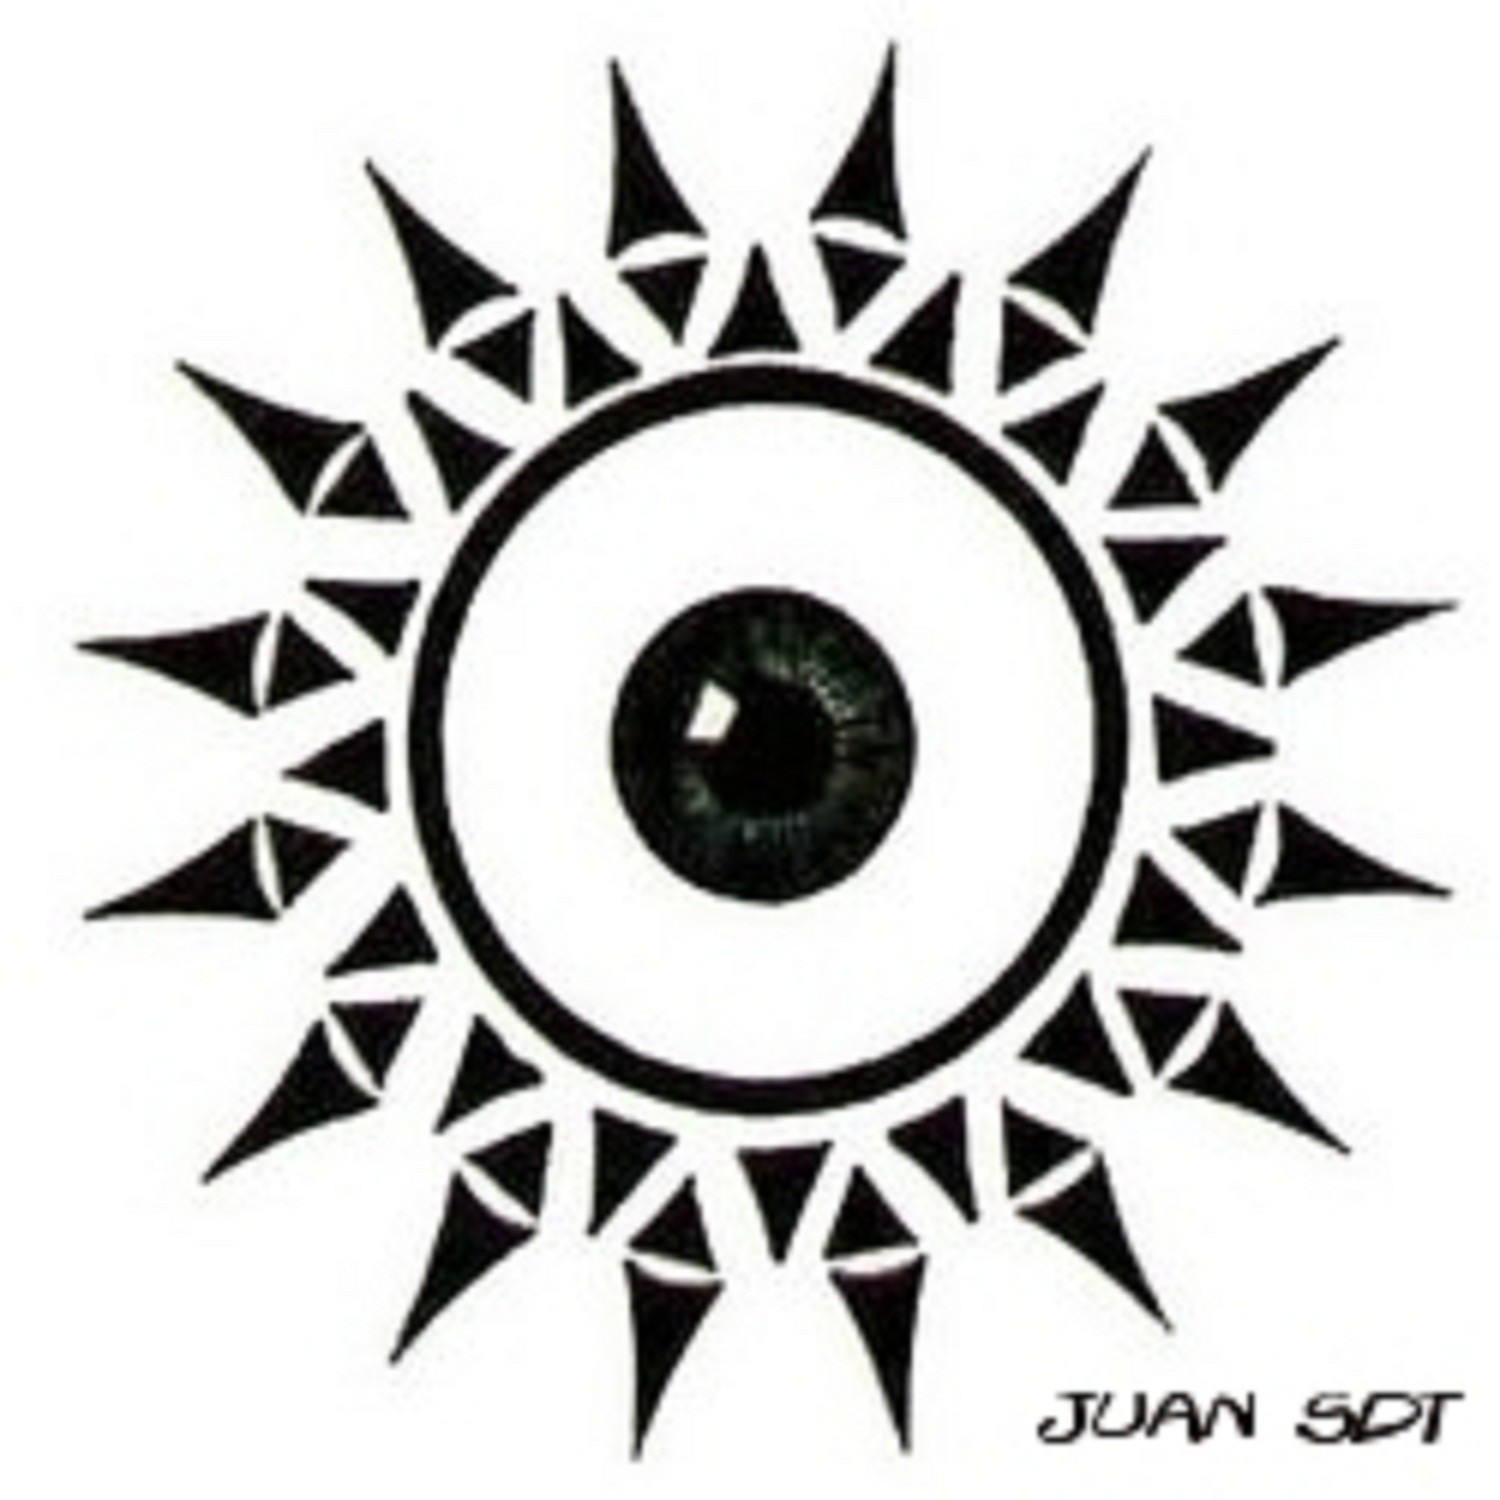 Dj Juan SDT's Podcast